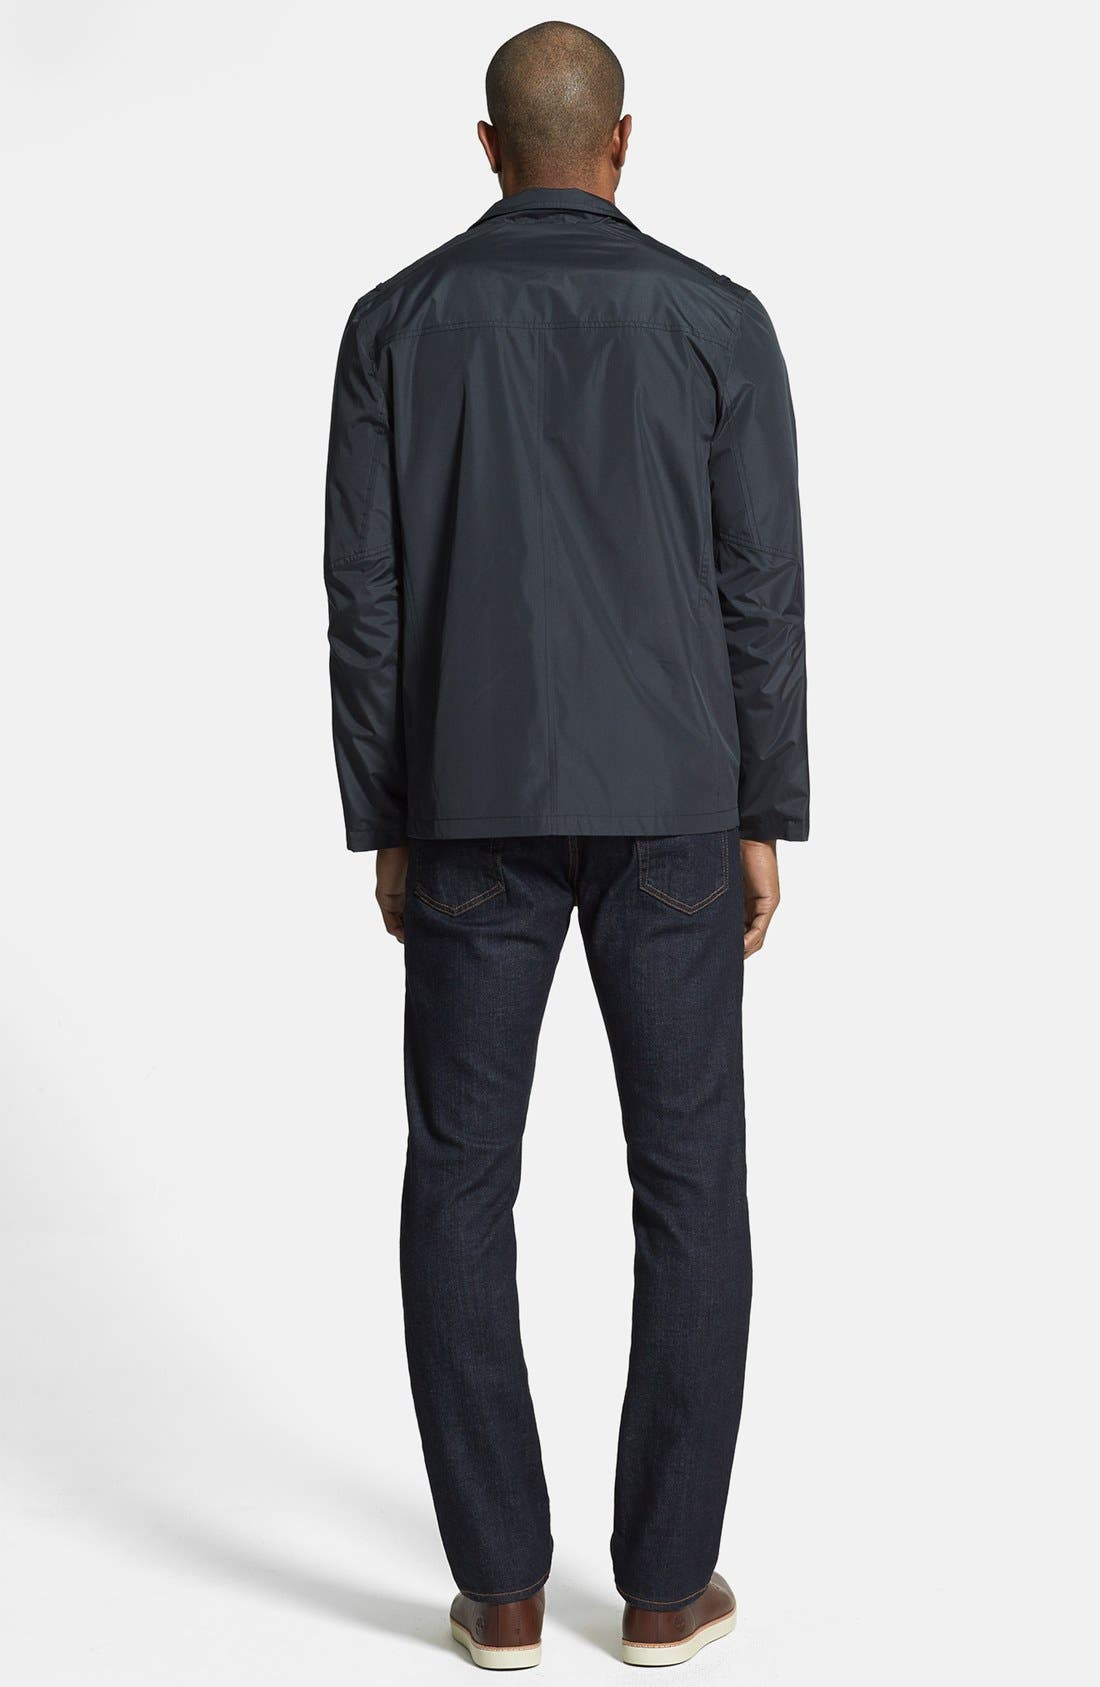 ANDREW MARC,                             'Robert' Water Resistant Jacket,                             Alternate thumbnail 2, color,                             001